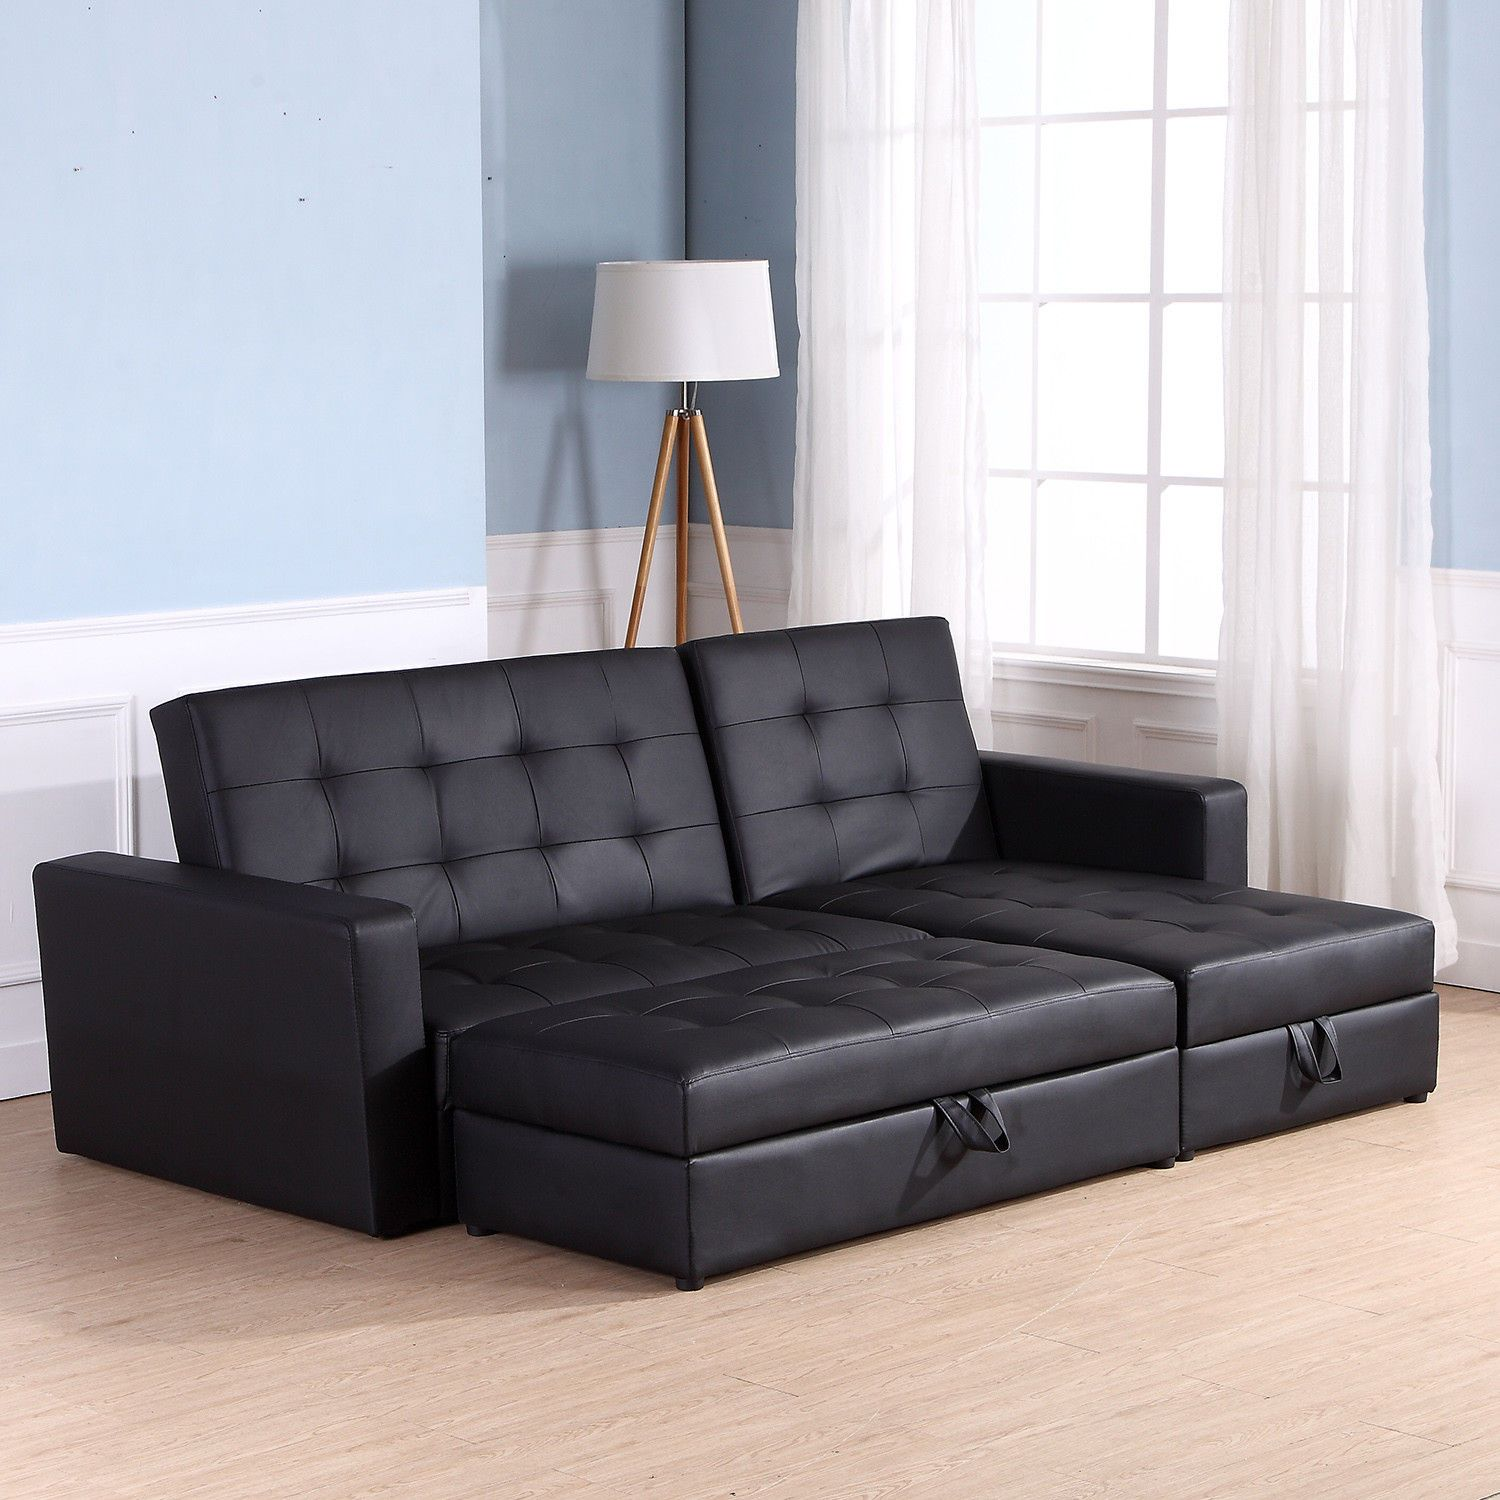 sectional couch sleeper sofa-#sectional #couch #sleeper #sofa Please Click Link To Find More Reference,,, ENJOY!!